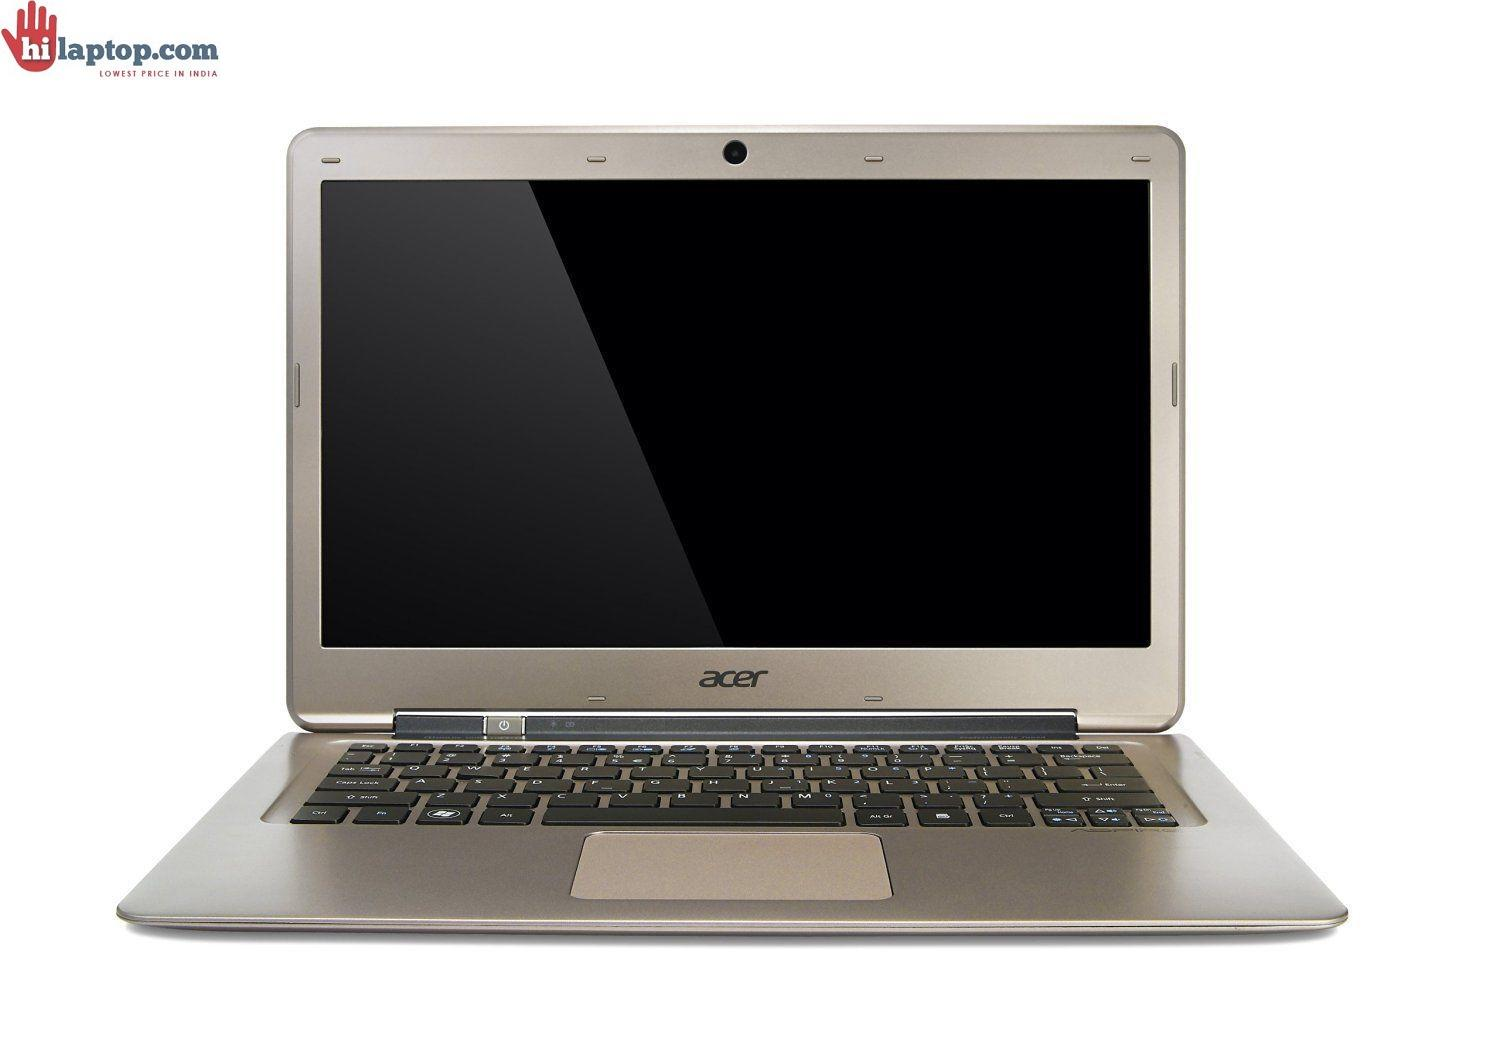 ACER ASPIRE S3-392G INTEL SMART CONNECT TECHNOLOGY WINDOWS 7 64 DRIVER